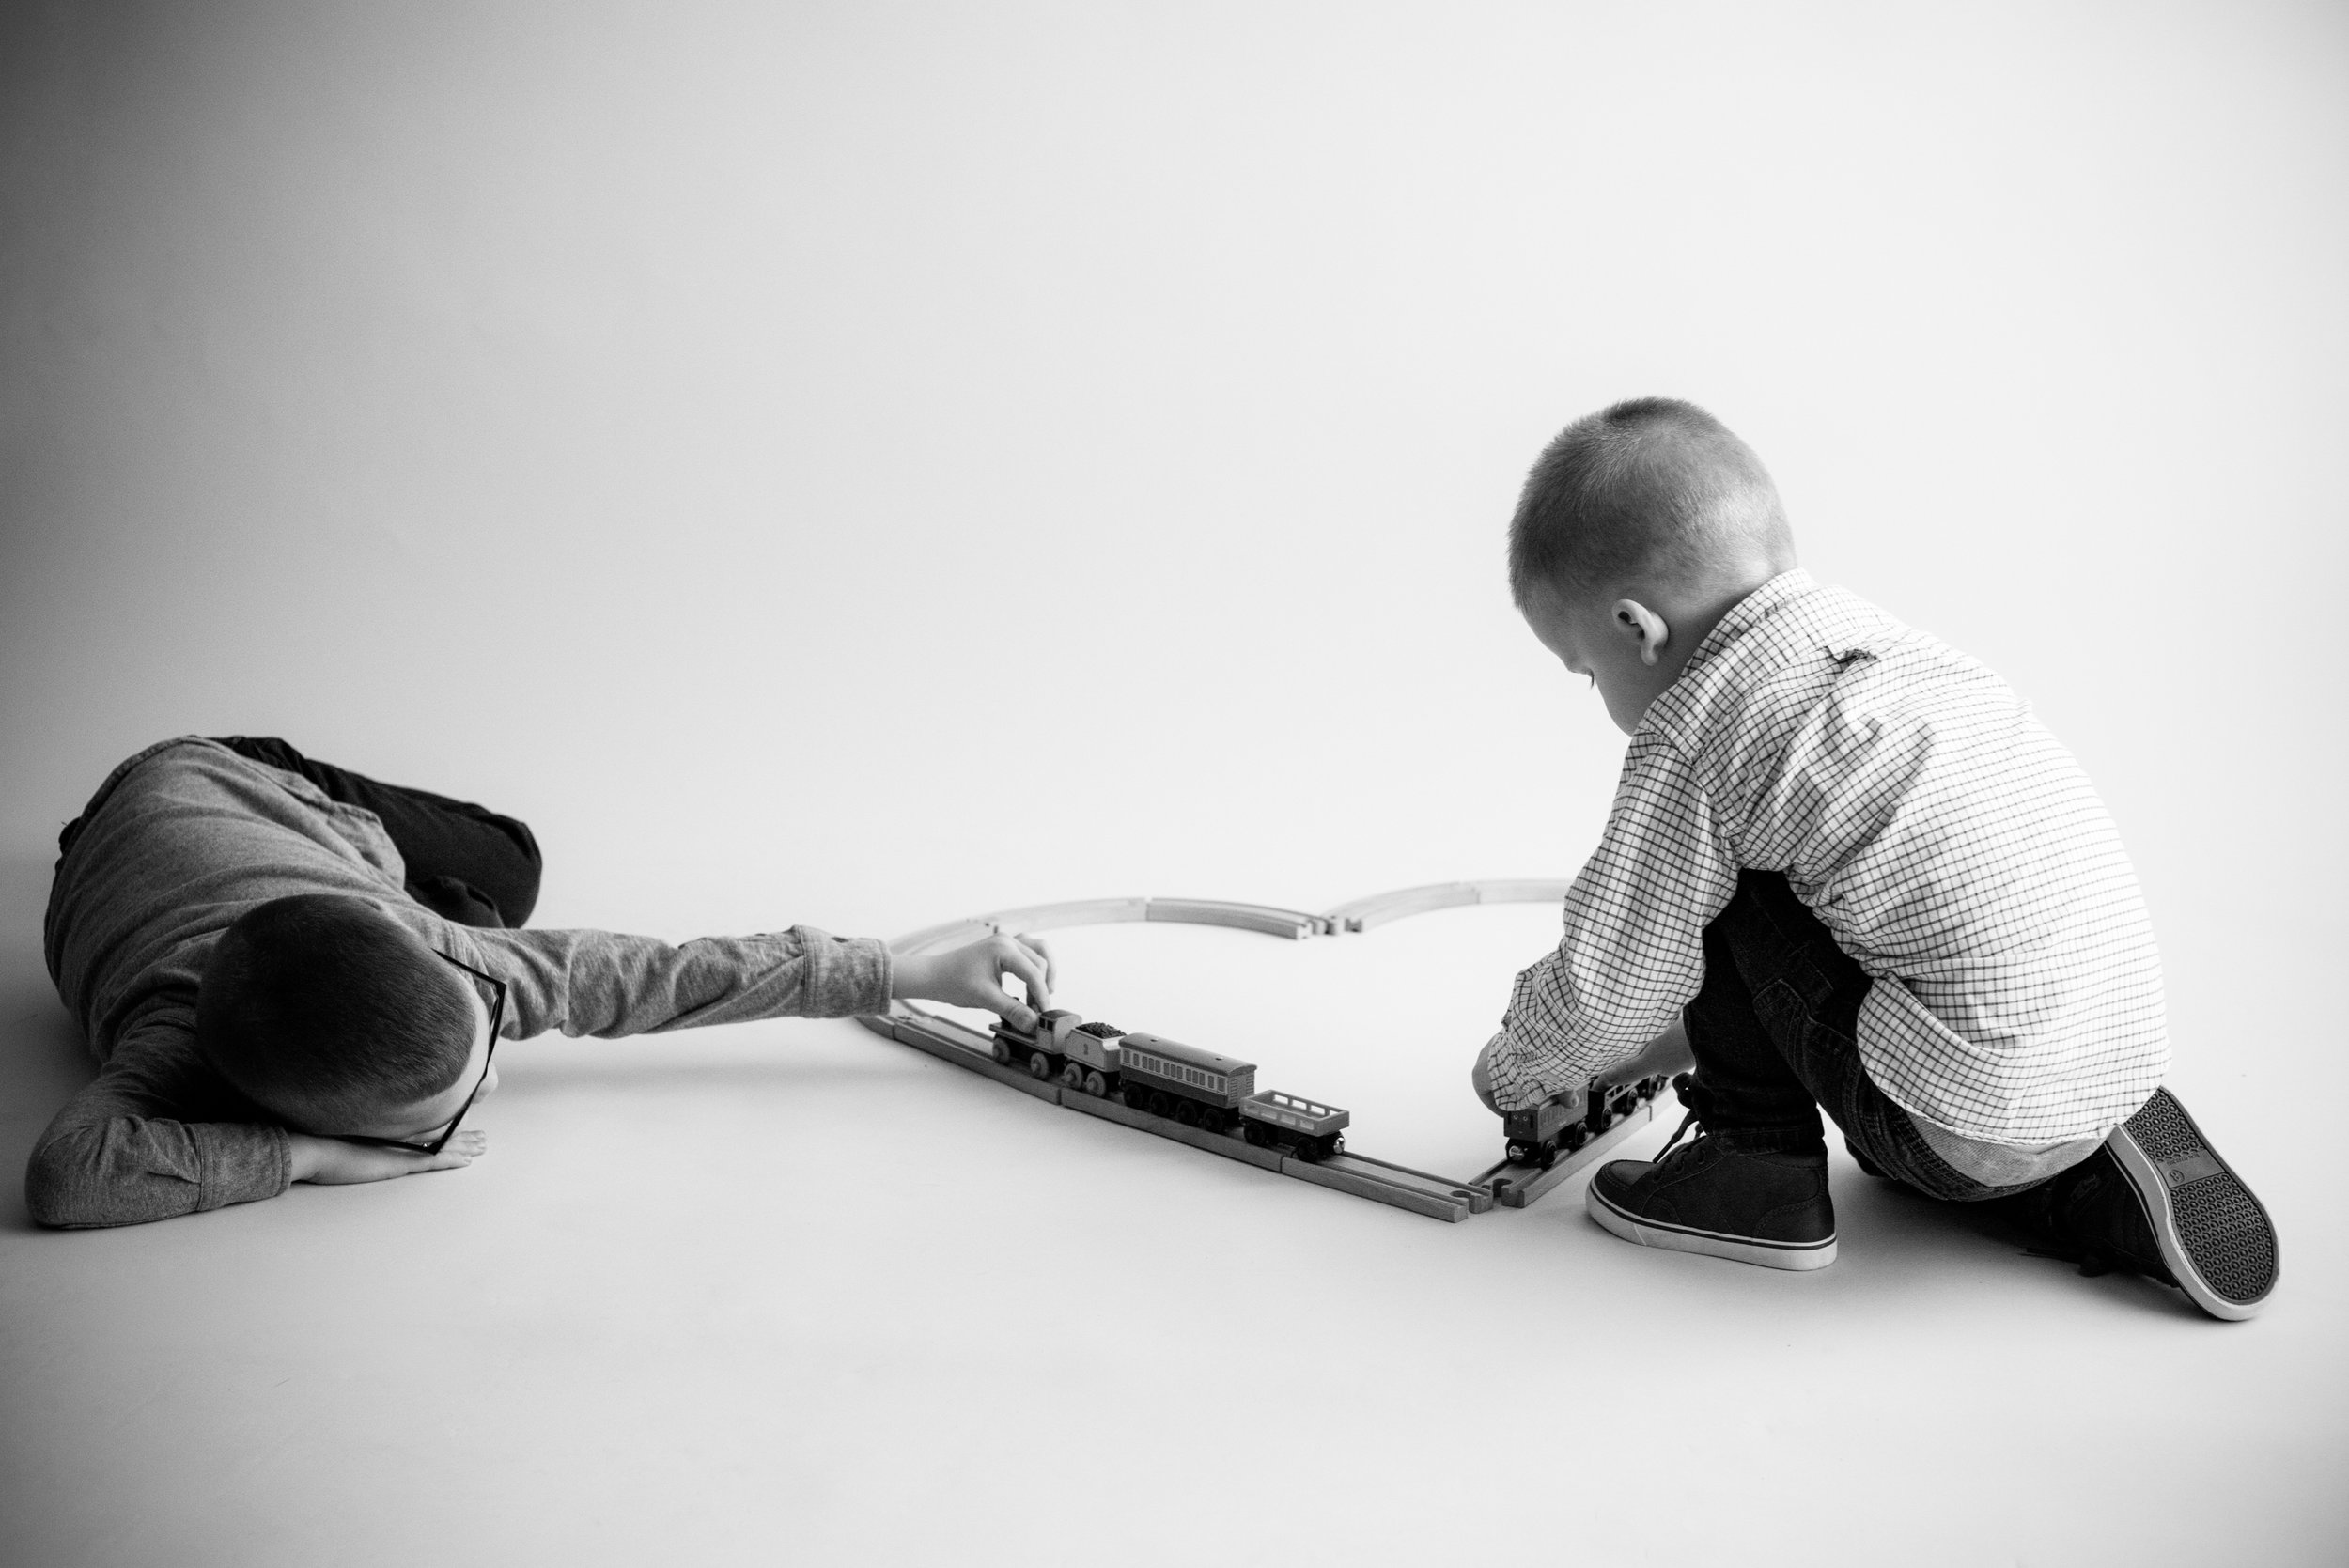 Two boy children playing with toy trains during photo session in Cedar Rapids, Iowa in black and white.